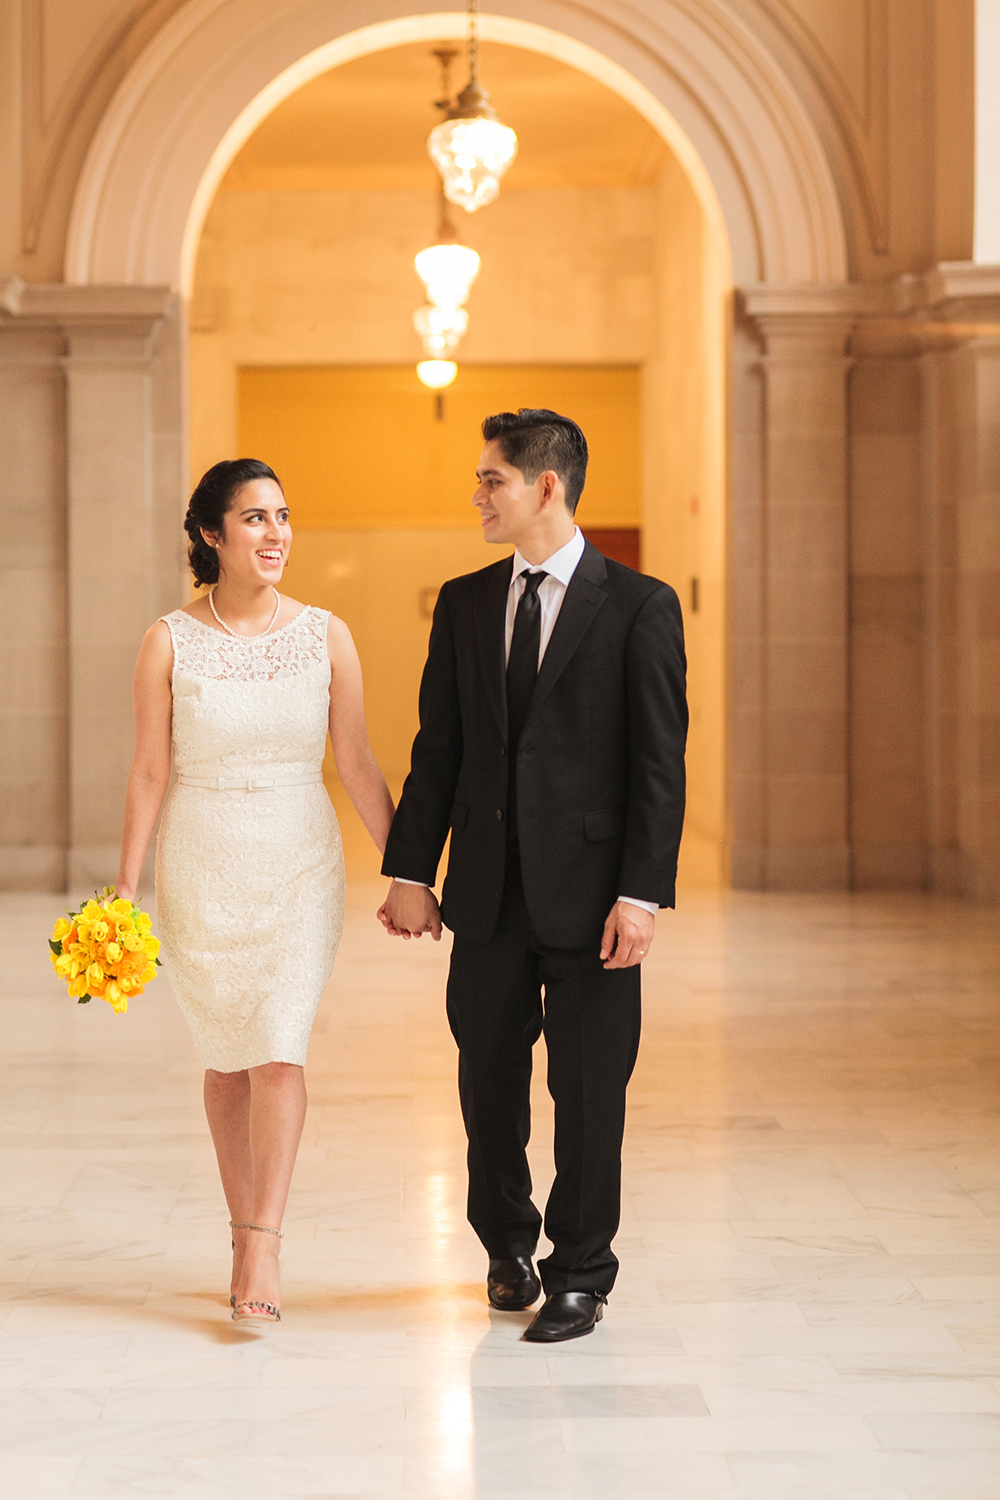 wedding-at-san-francisco-city-hall-05.html